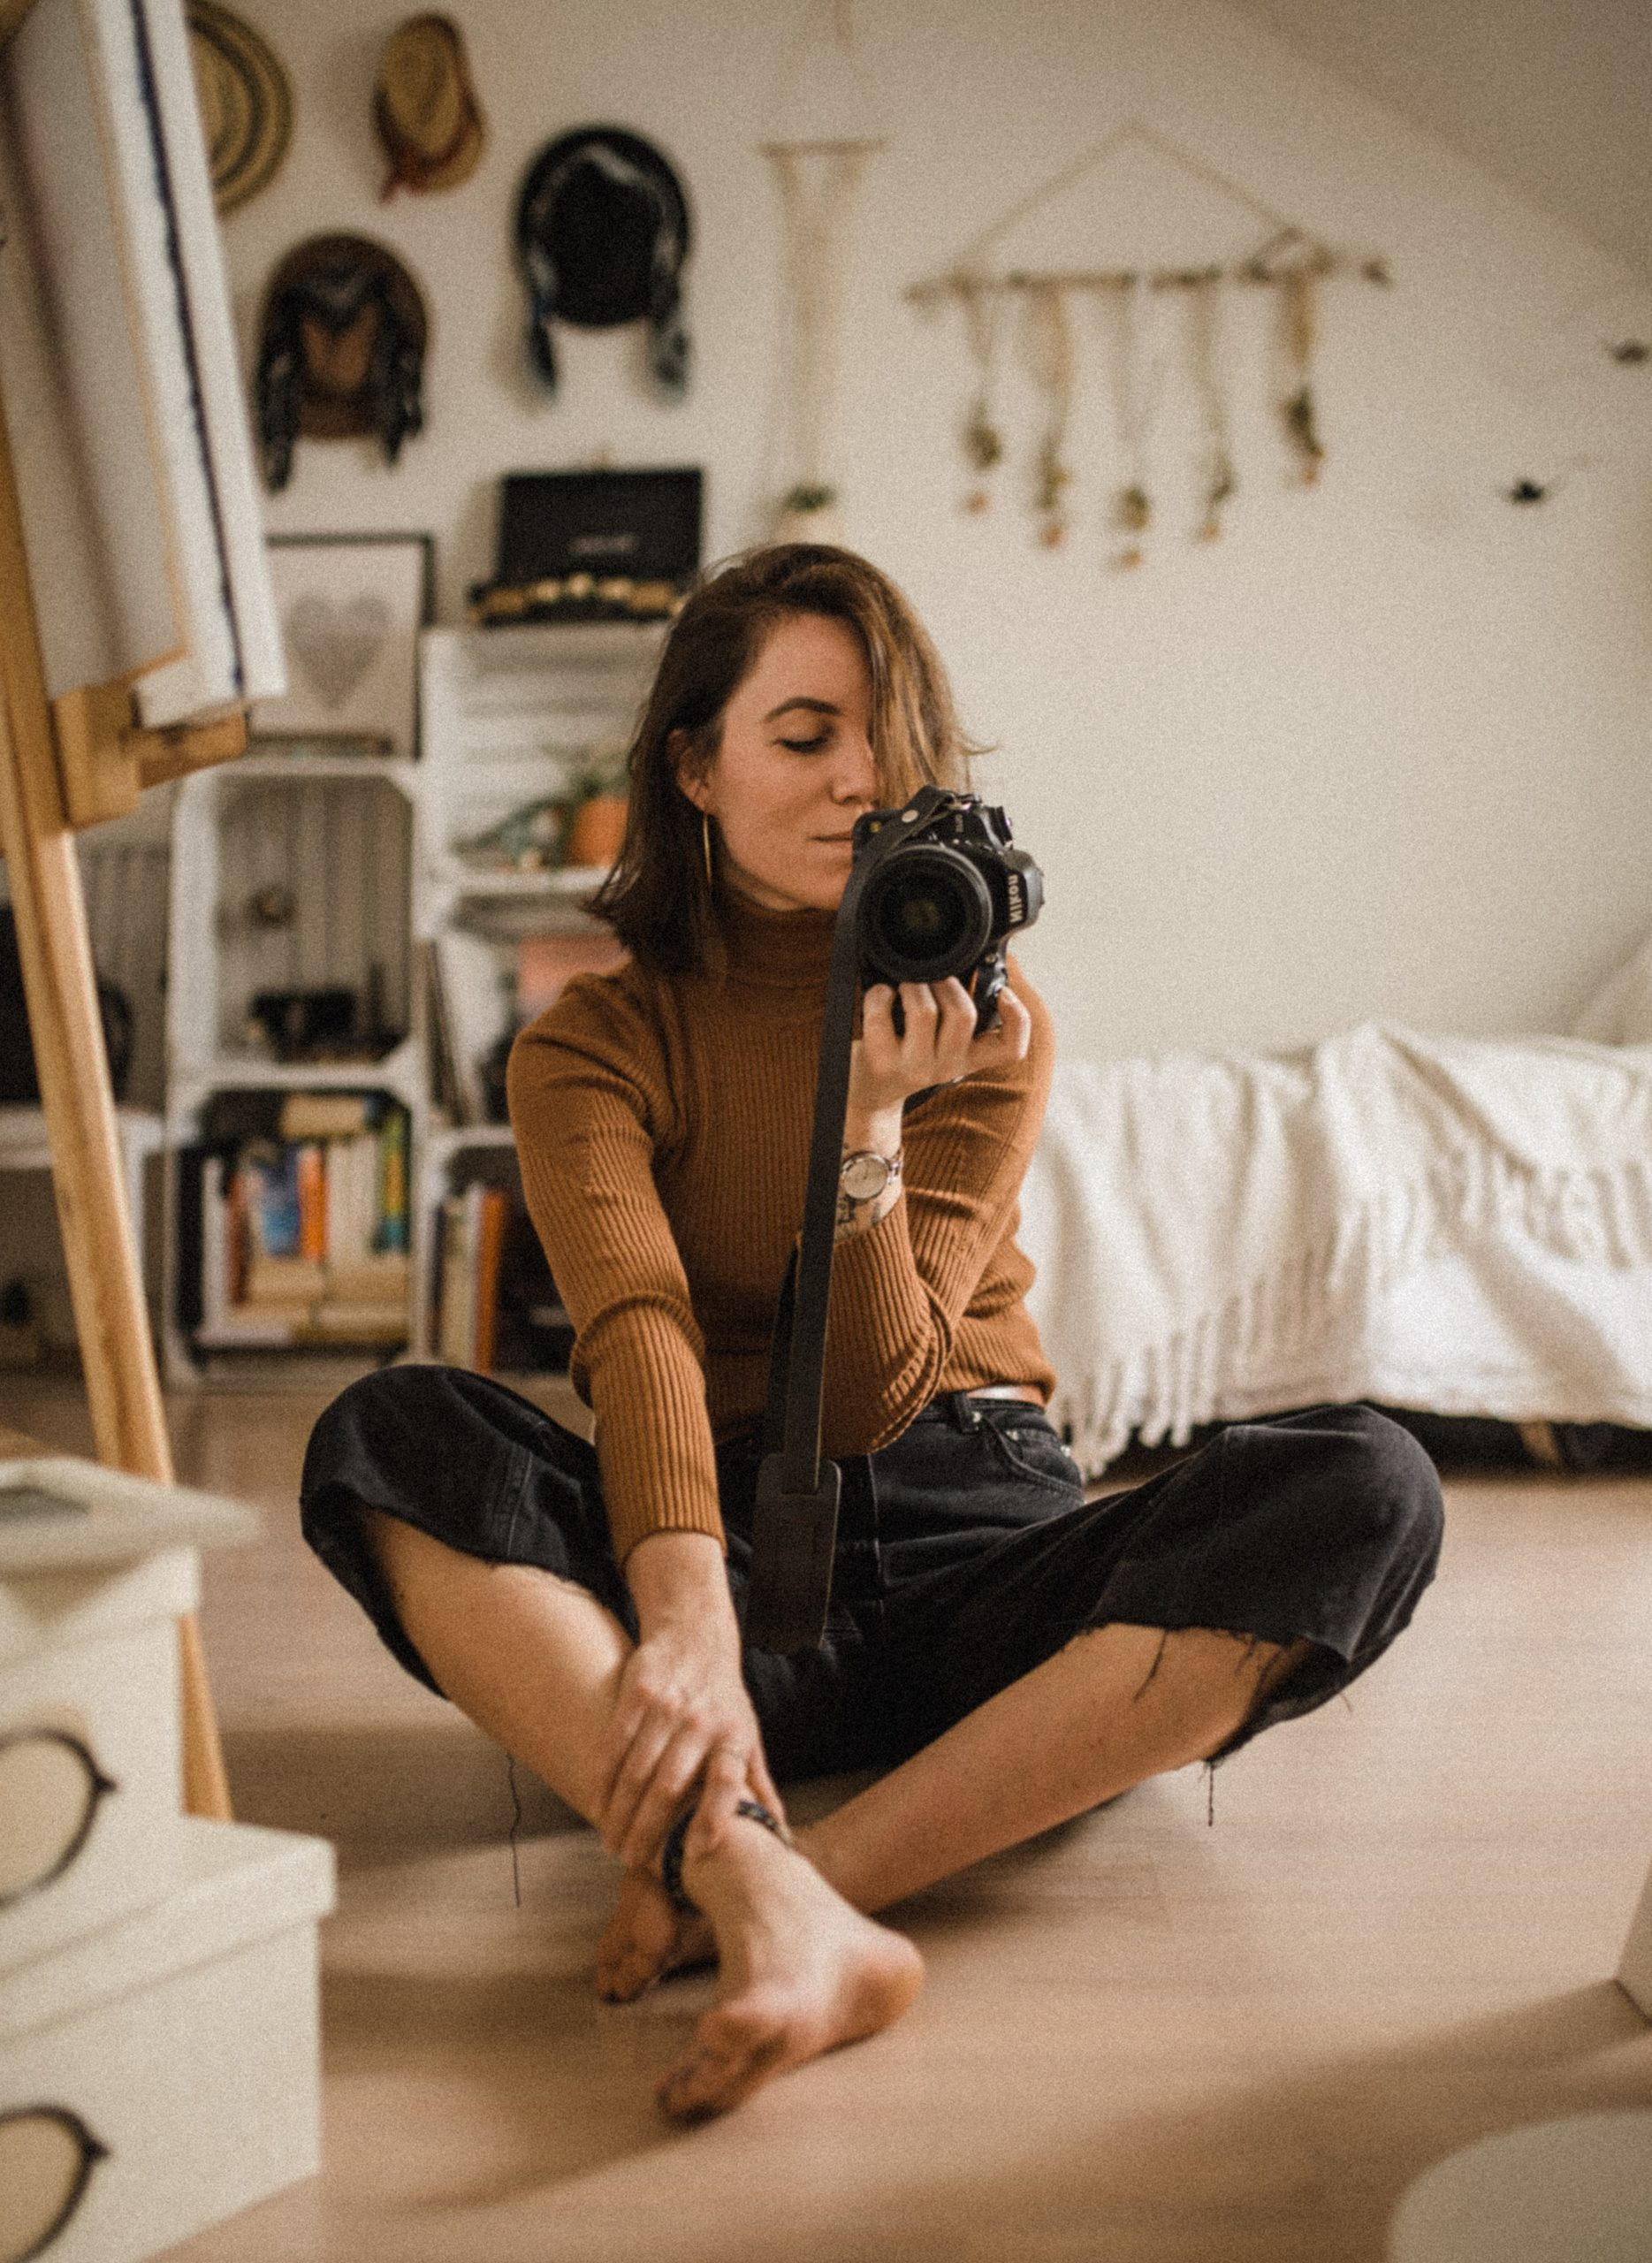 kinga cichewicz HHw9lc0ogIs unsplash scaled - Making An Instagram Worthy Corner In Your Room